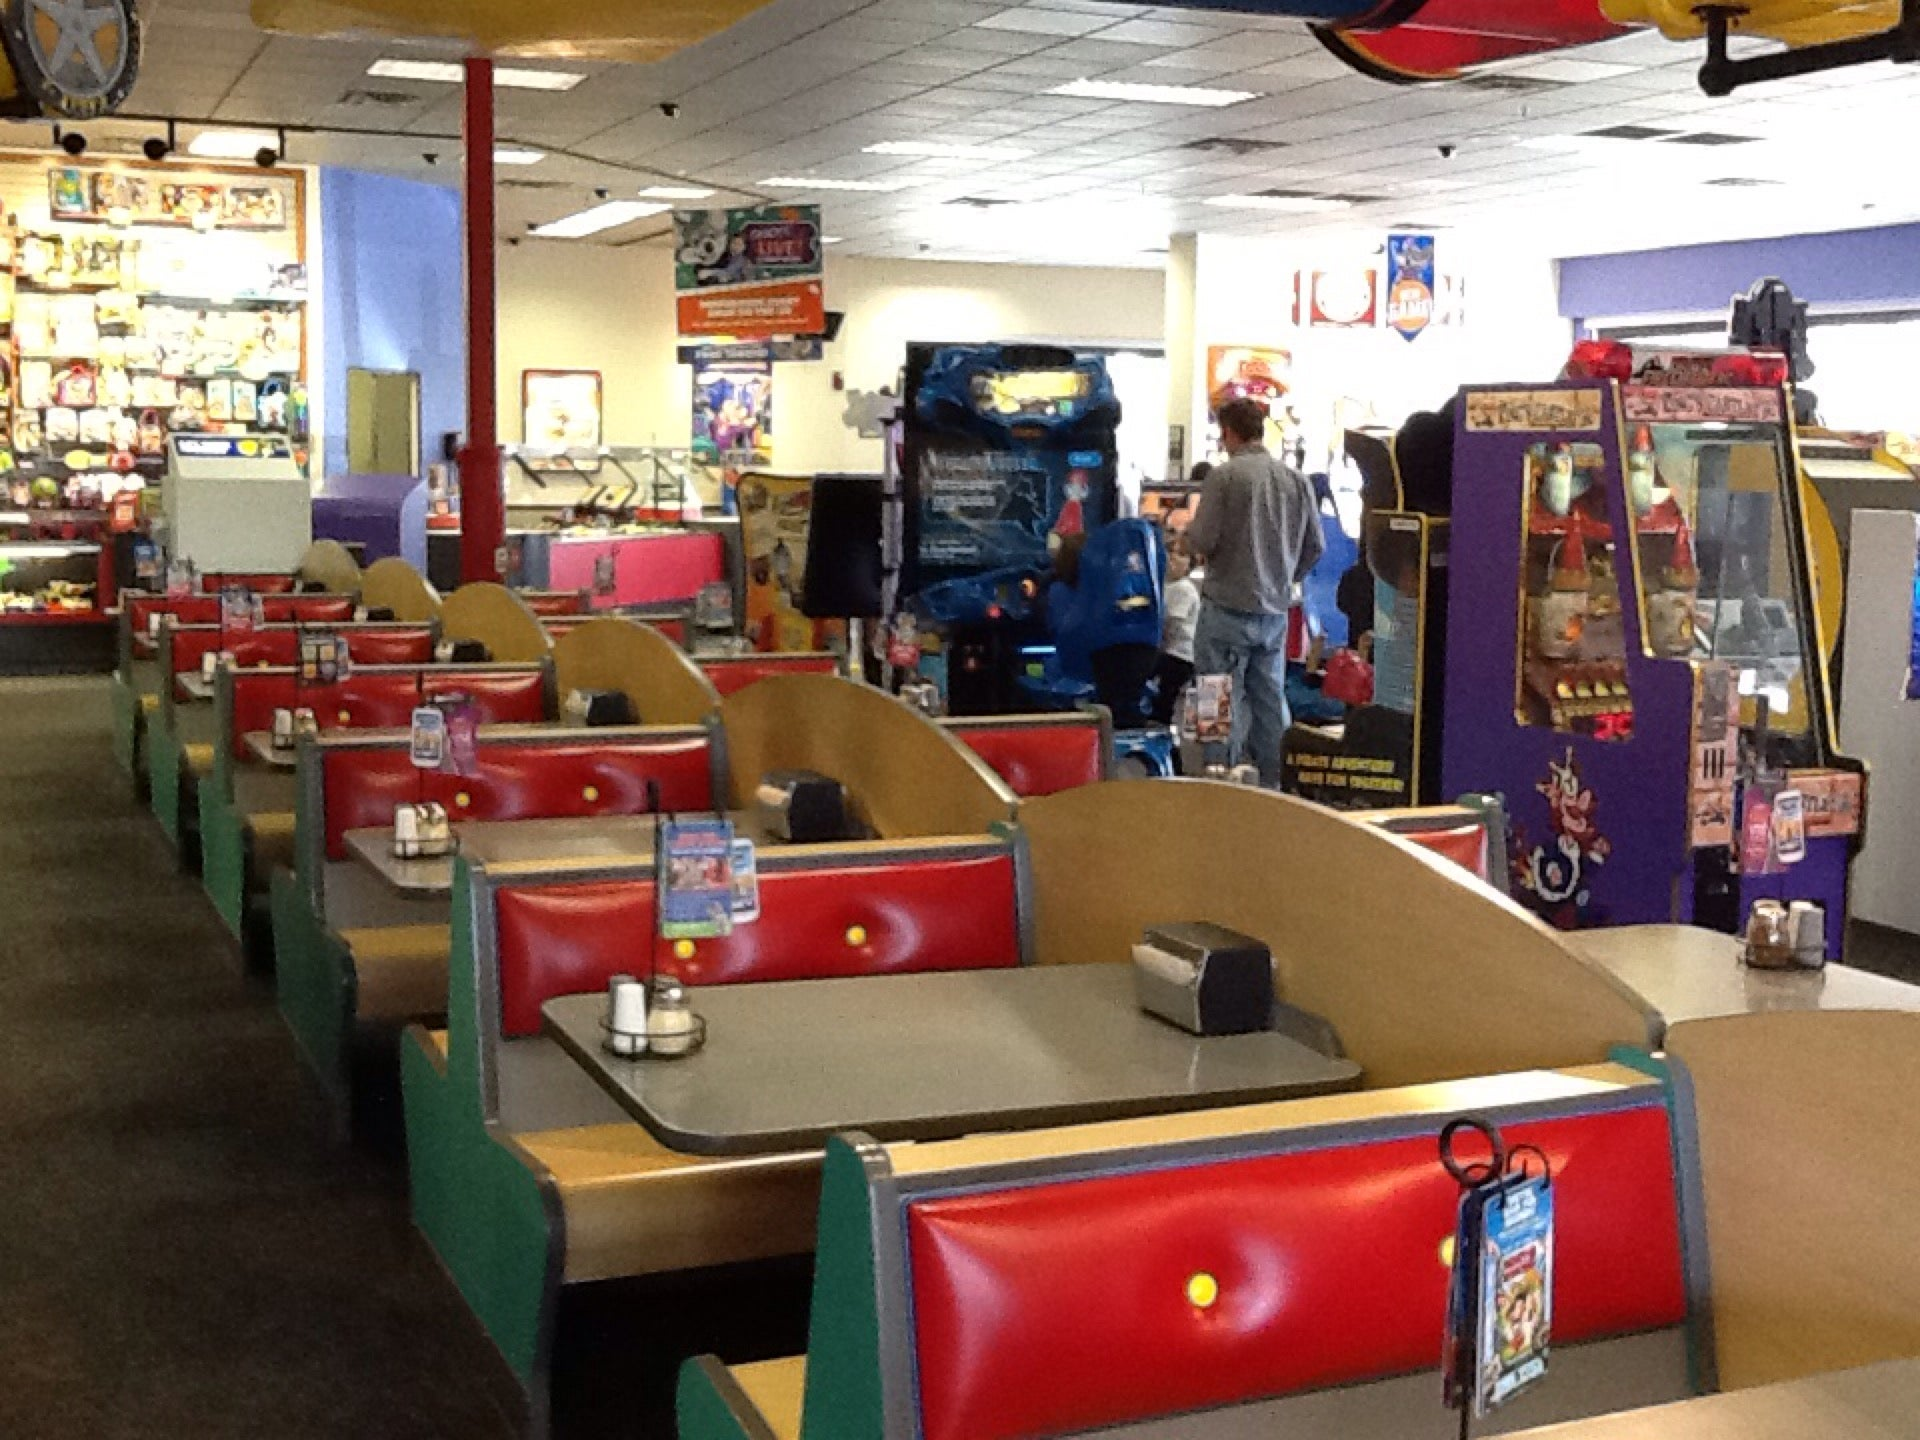 Chuck E. Cheese's,chuckie cheese,chucky cheese,entertainment center,family entertainment,family fun,games,kids,kids entertainment,pizza,playground